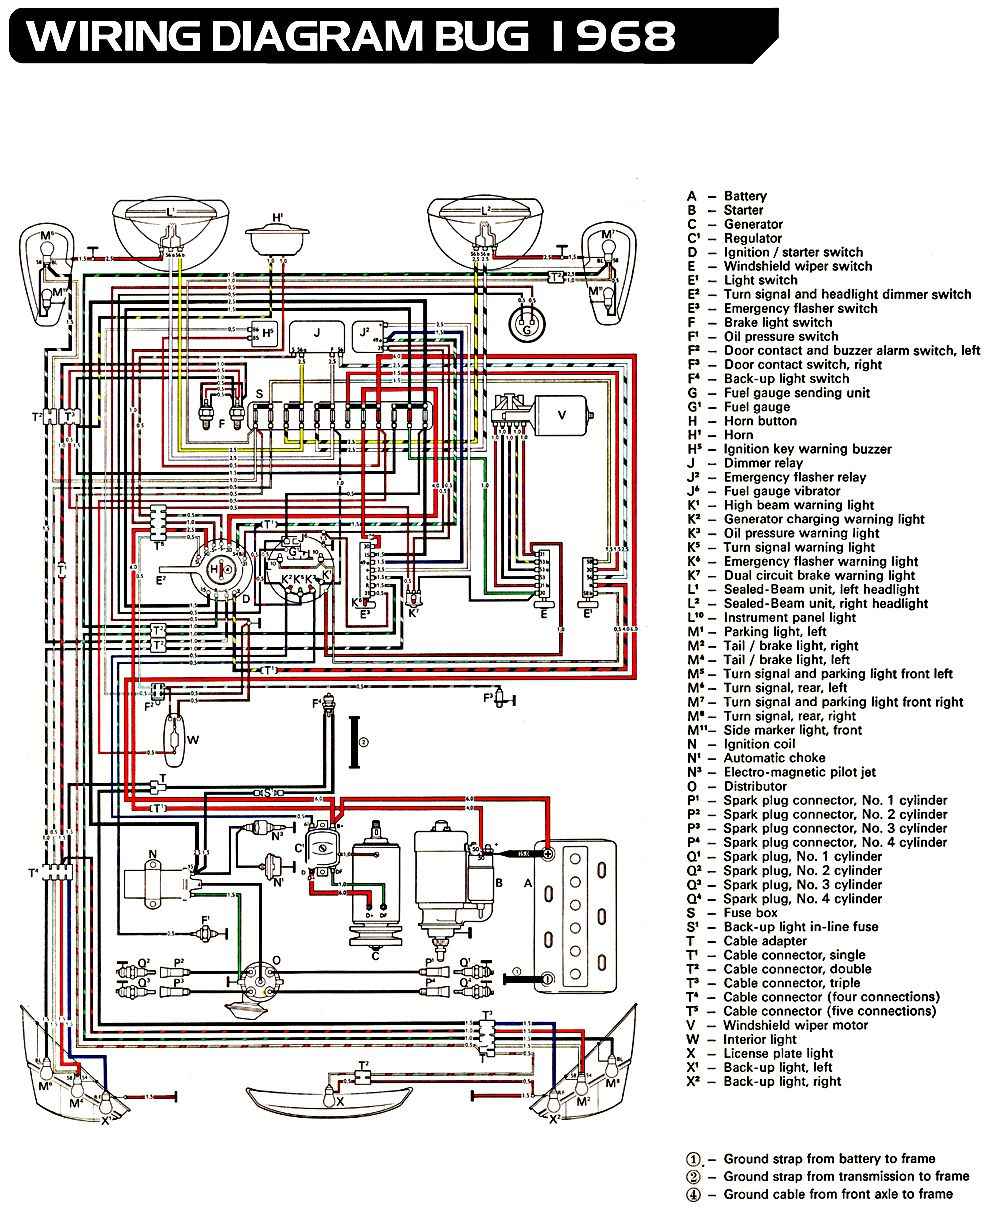 3a1908112d3826270ed5e3be362292bf vw bug ignition wiring diagram 73 vw wiring diagram free 1973 vw wiring diagram at reclaimingppi.co